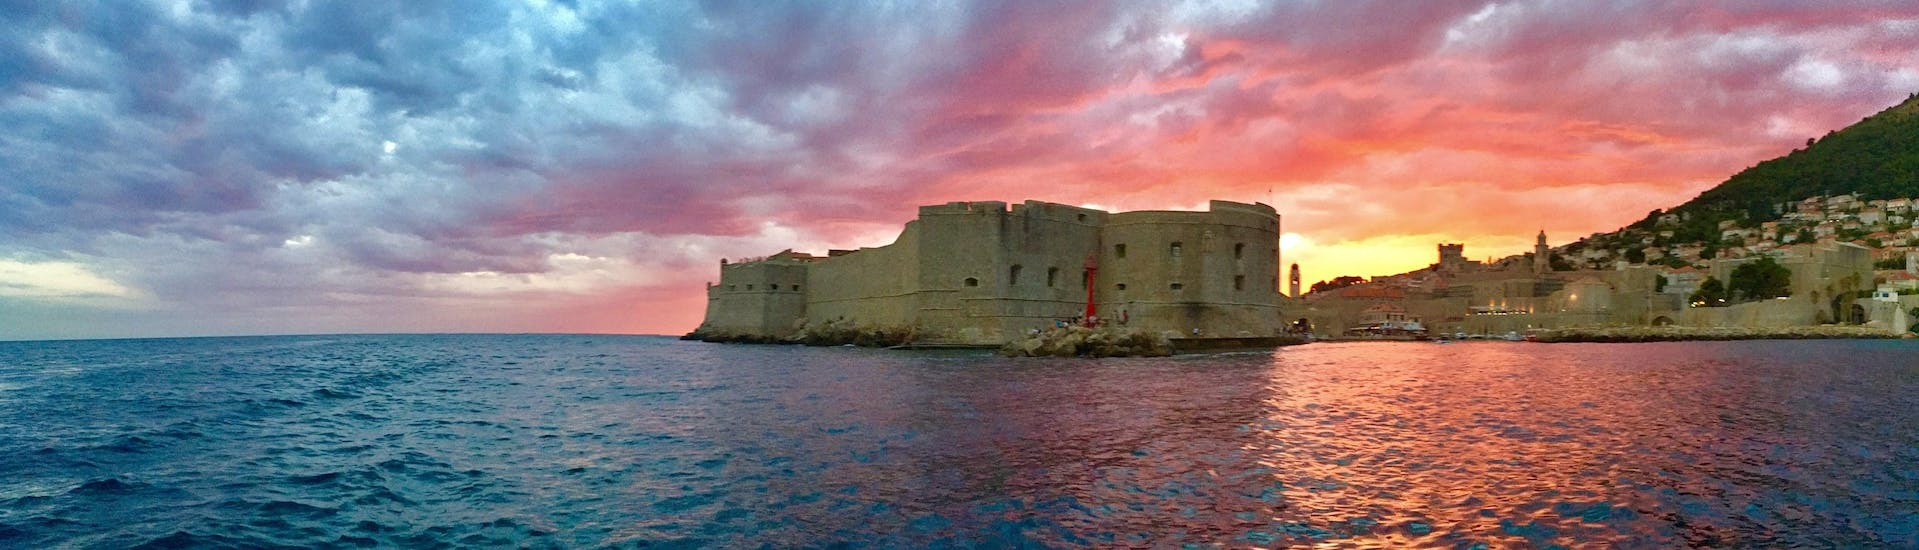 Tourists have a breathtaking view on a fortification during the Private Boat (4pax) to Elaphiti Islands - Explore & Snorkel organised by Explore Dubrovnik by Boat.